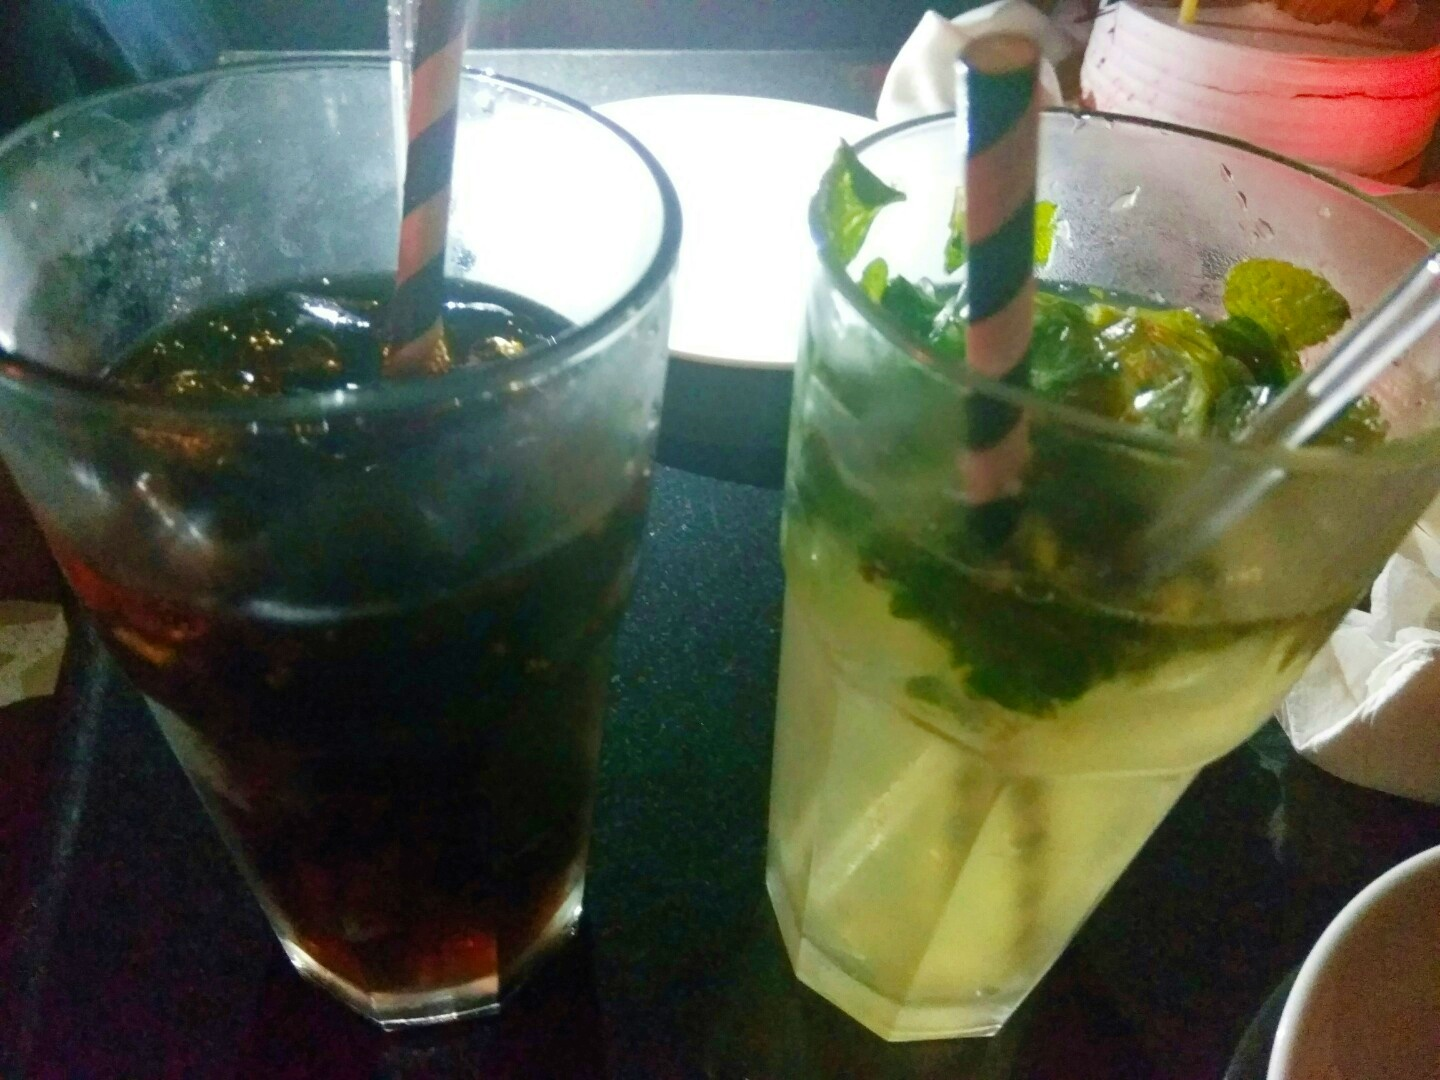 cheers, sightseeing, saraca, lebua, lucknow, uttar pradesh, india, long island iced tea, mojito